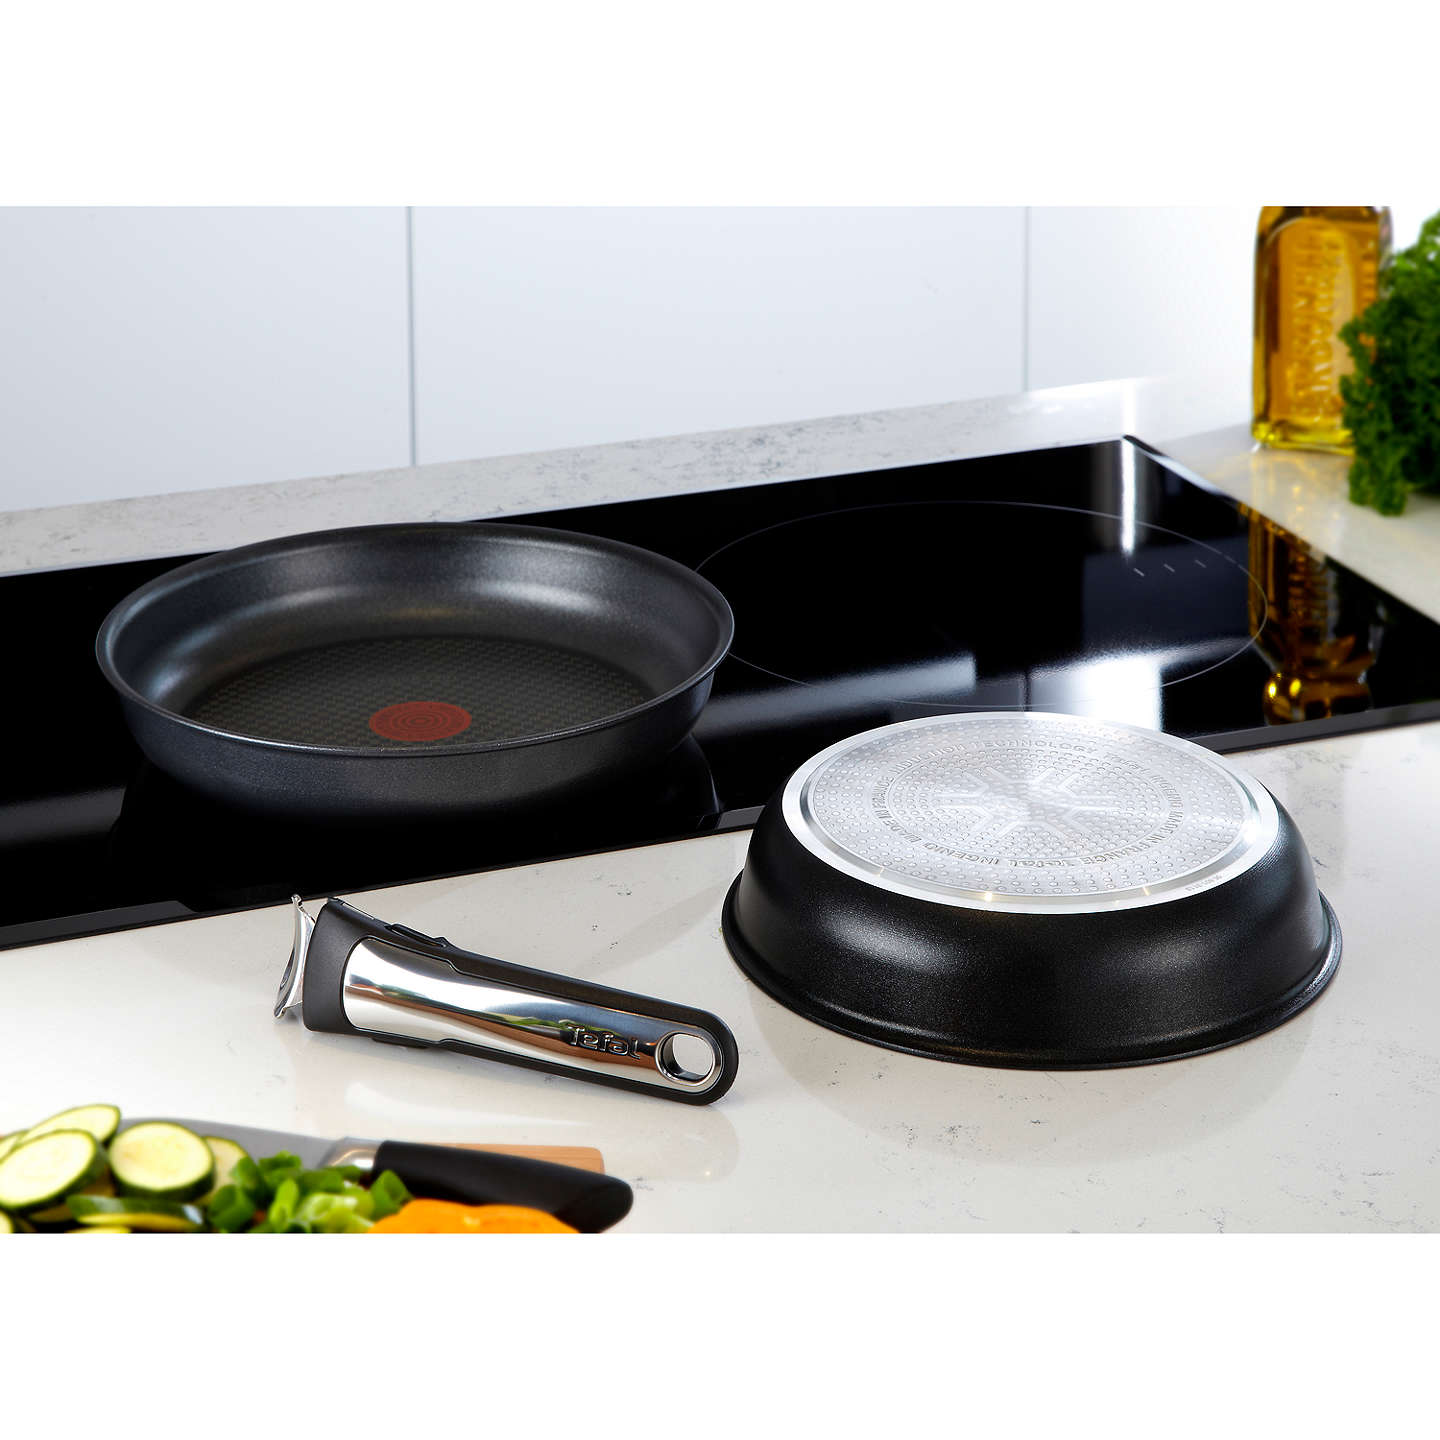 tefal ingenio induction frying pan set 3 piece at john lewis. Black Bedroom Furniture Sets. Home Design Ideas